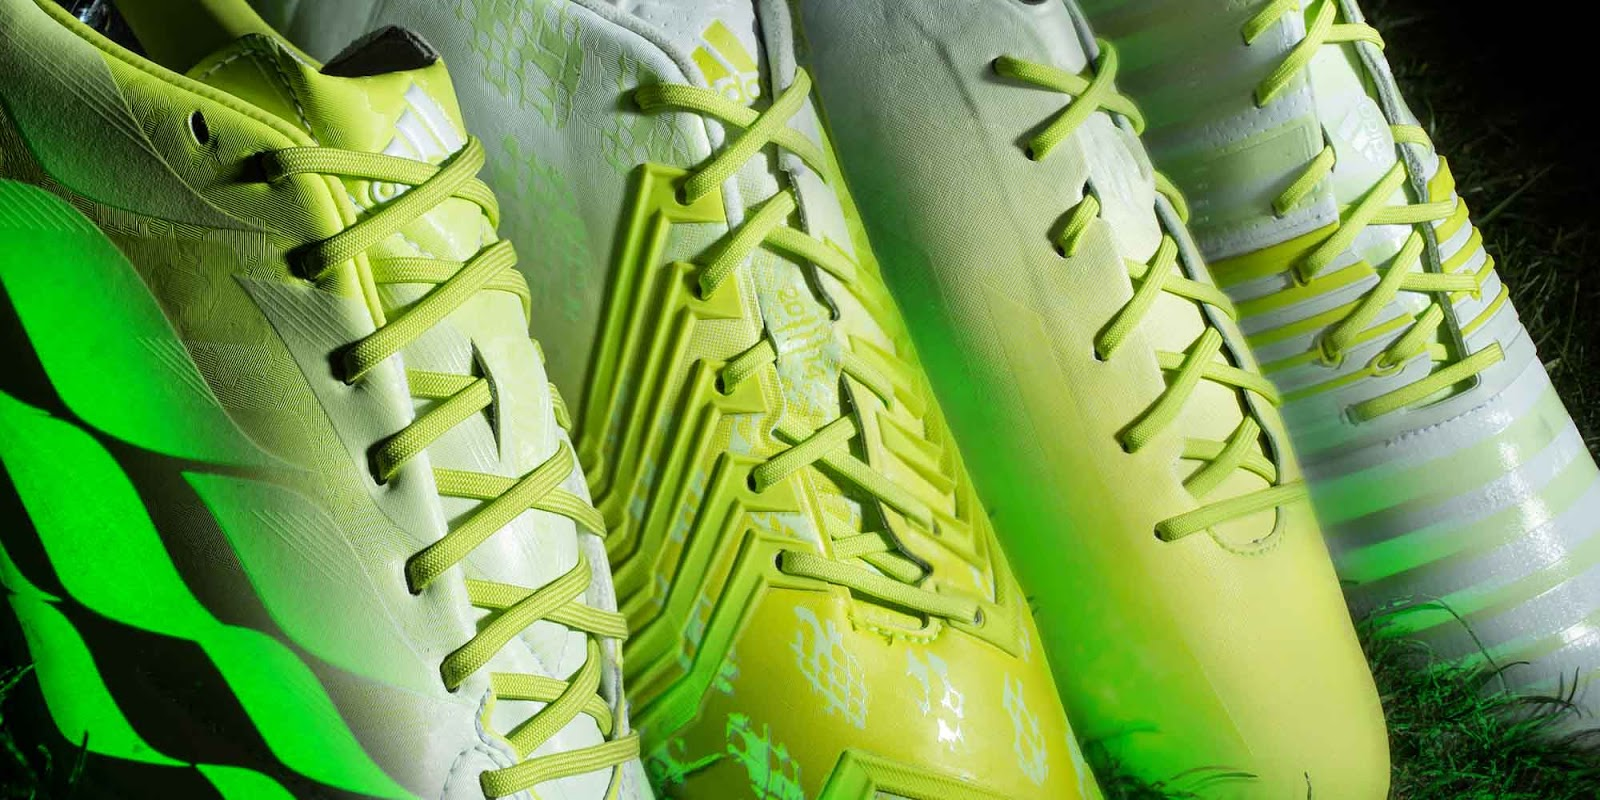 Adidas-2014-Glow-in-the-Dark-Hunt-Pack (4)